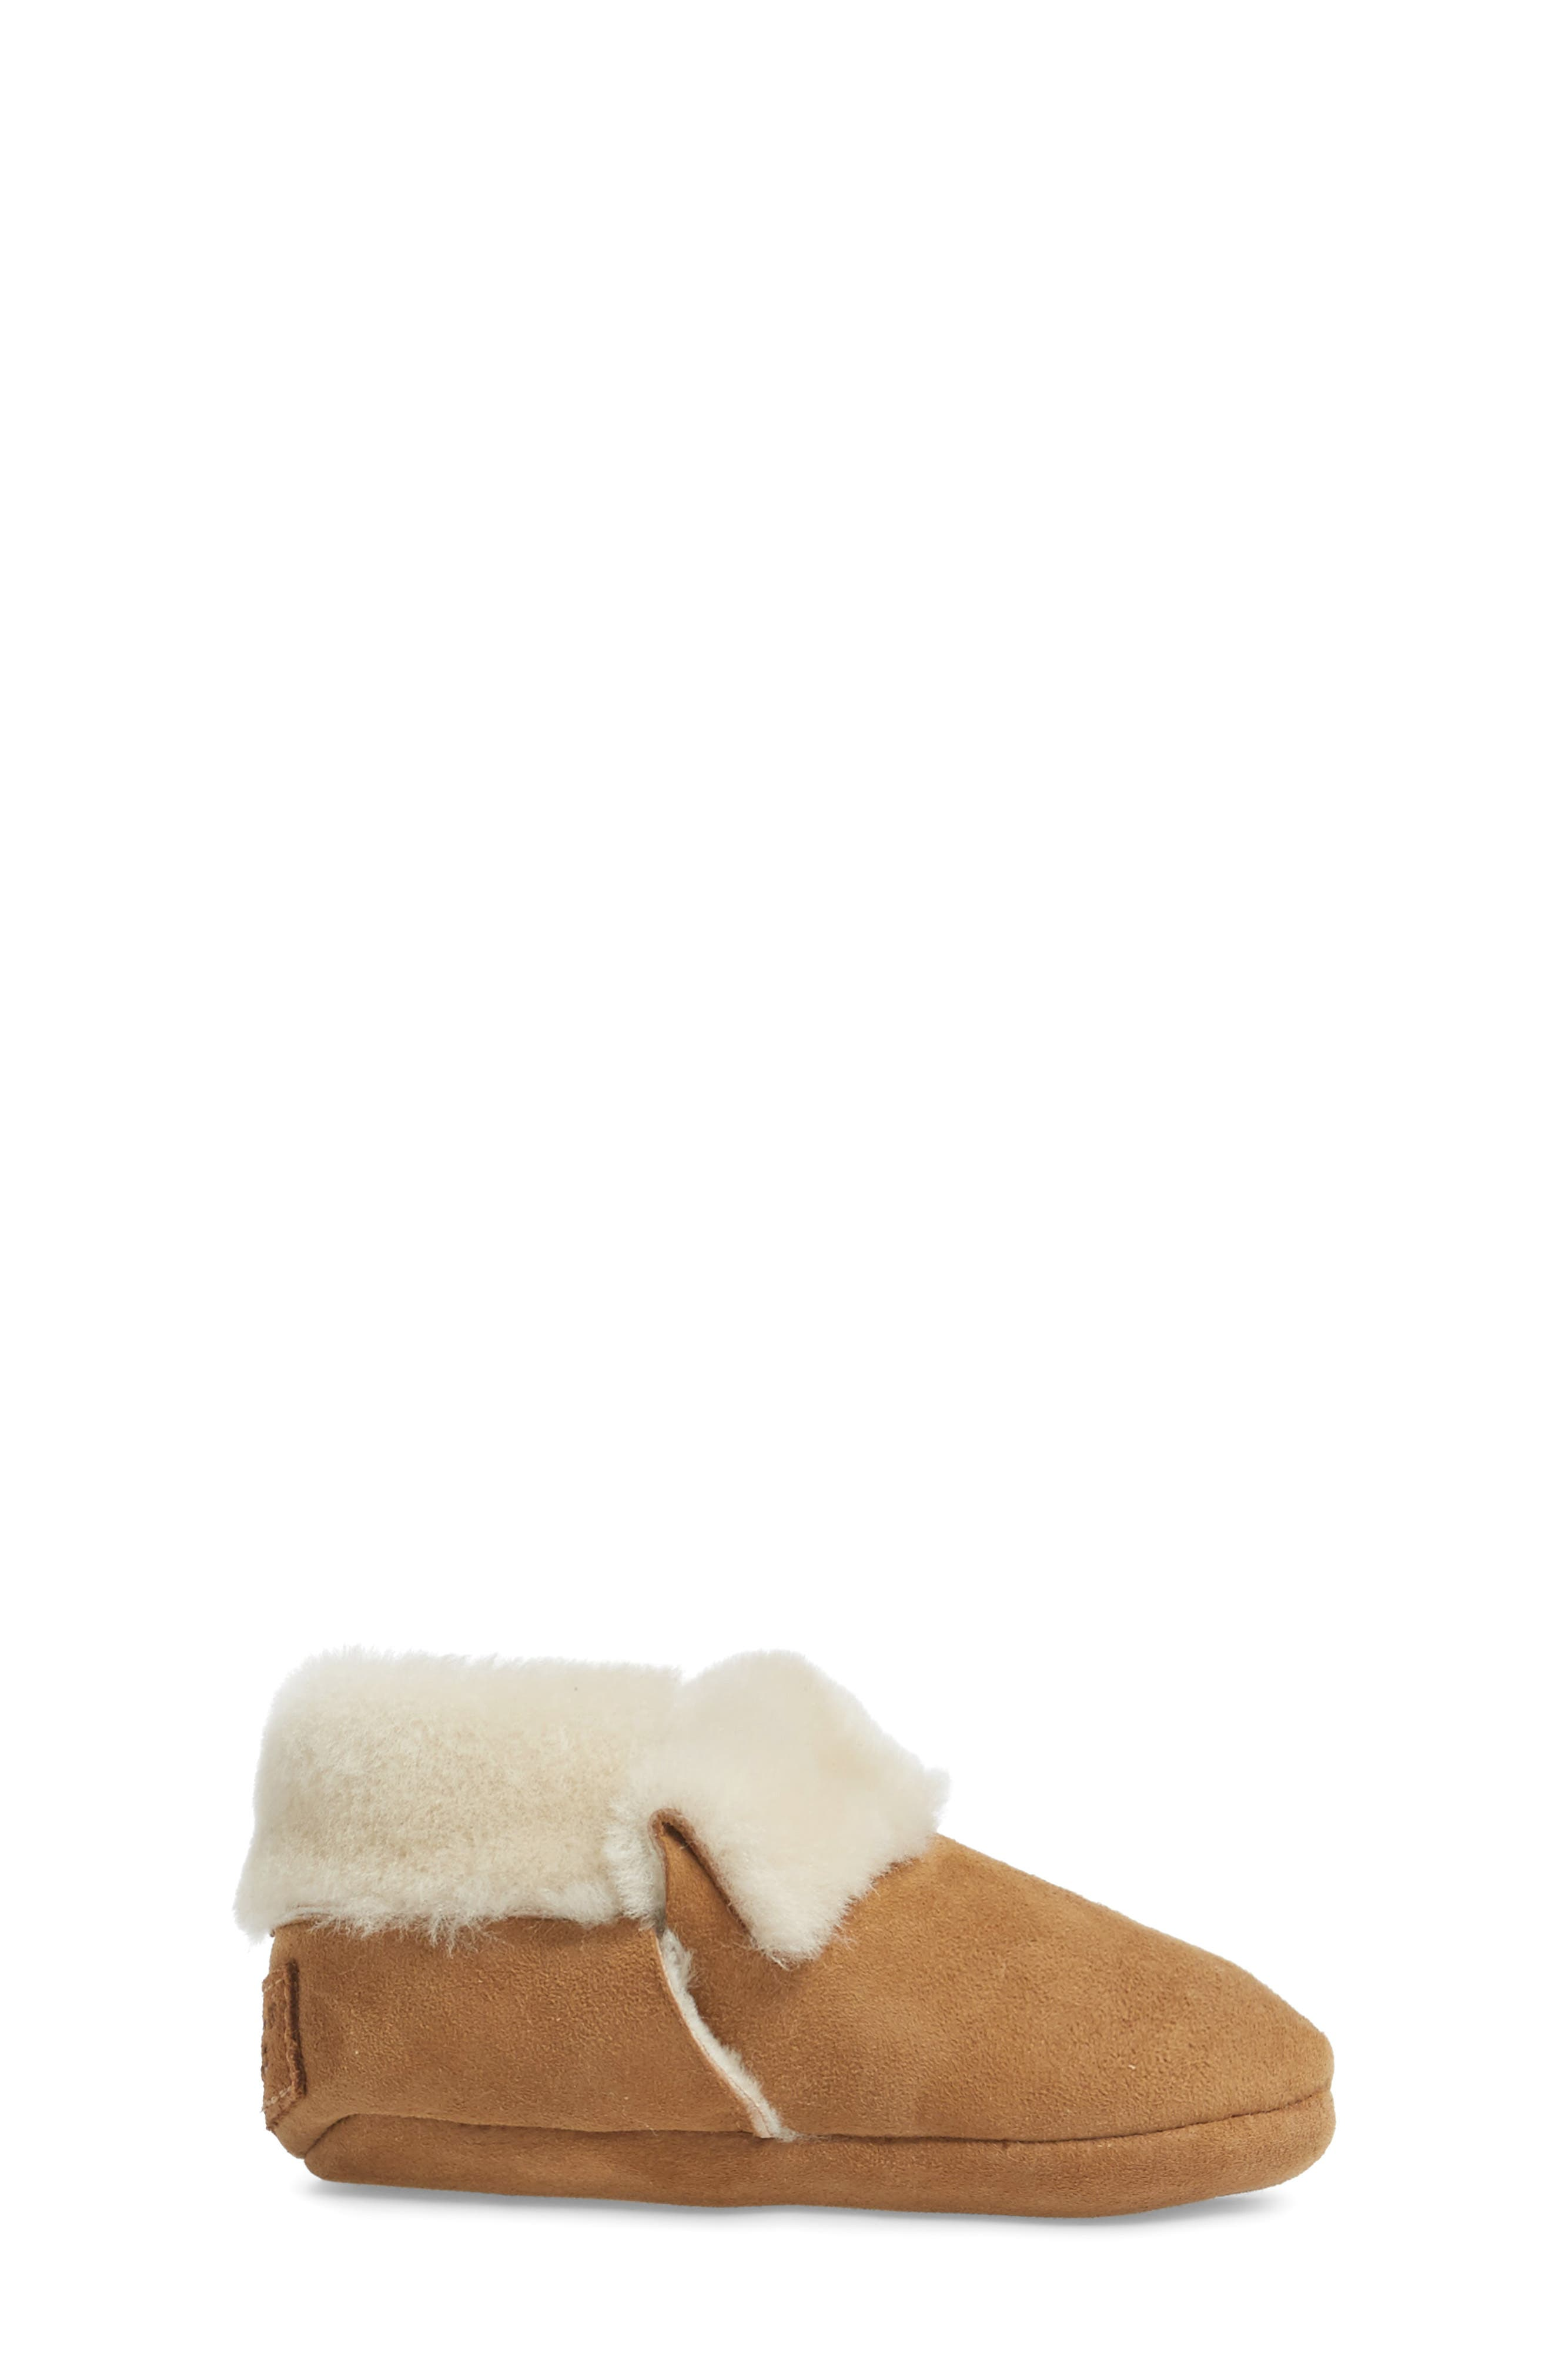 Solvi Genuine Shearling Low Cuffed Bootie,                             Alternate thumbnail 3, color,                             CHESTNUT